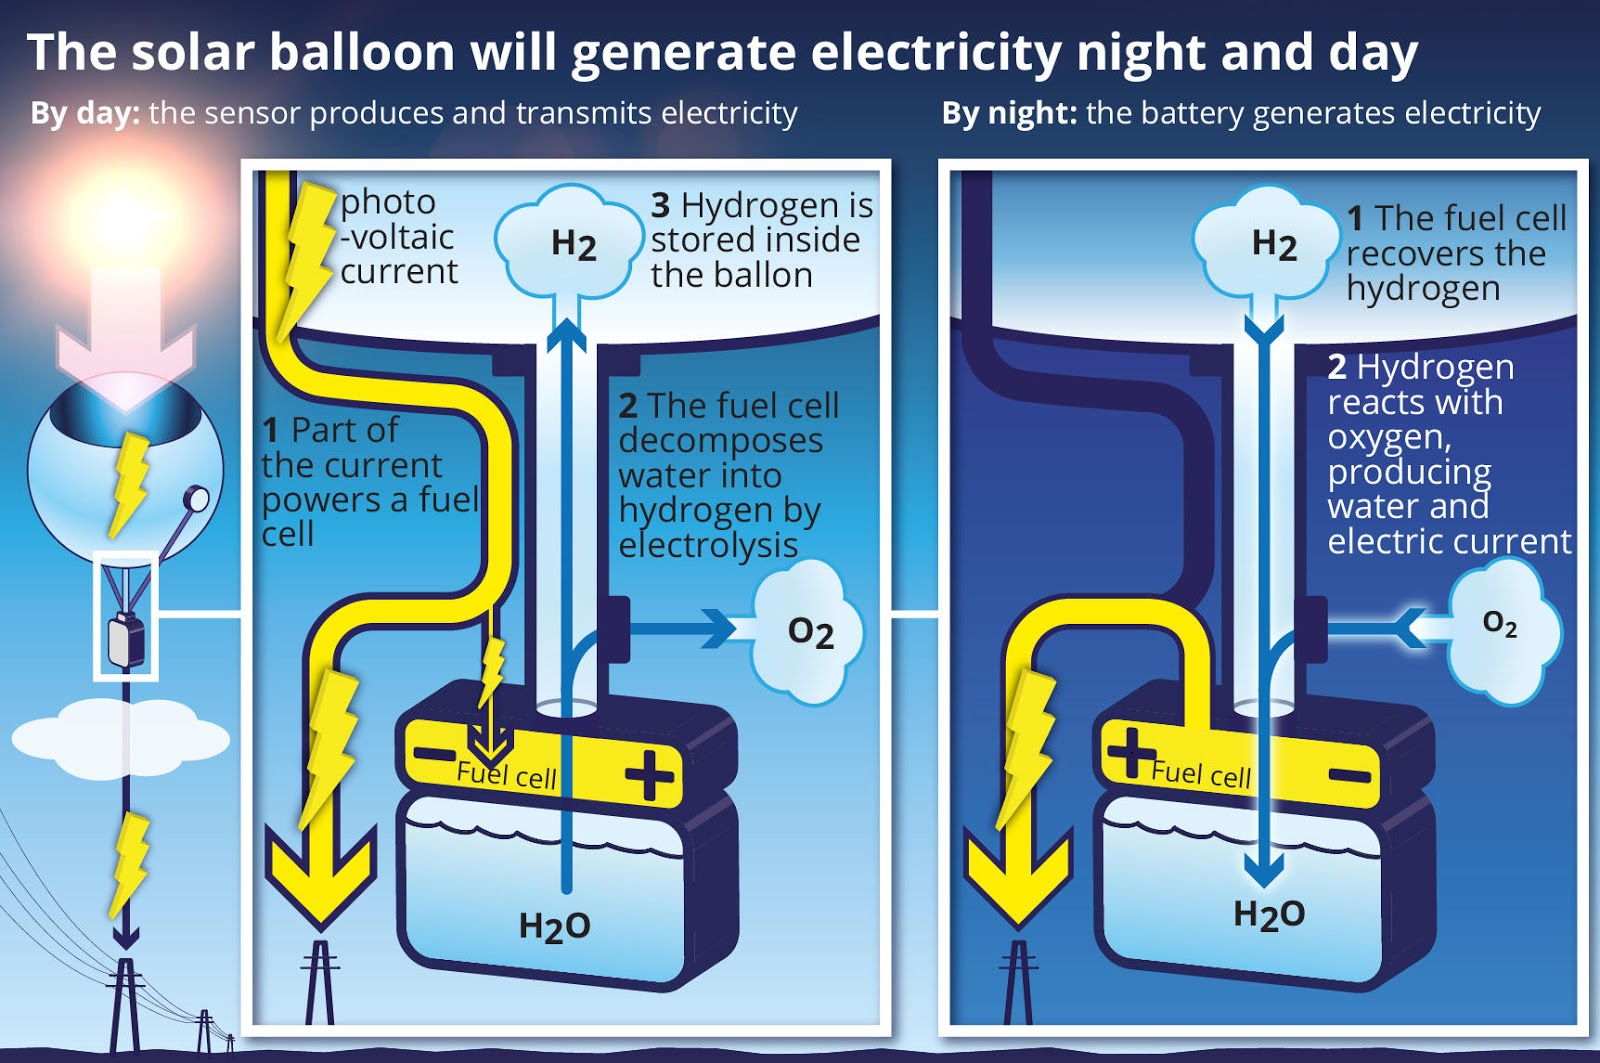 Solar power from hydrogen filled balloons could gather